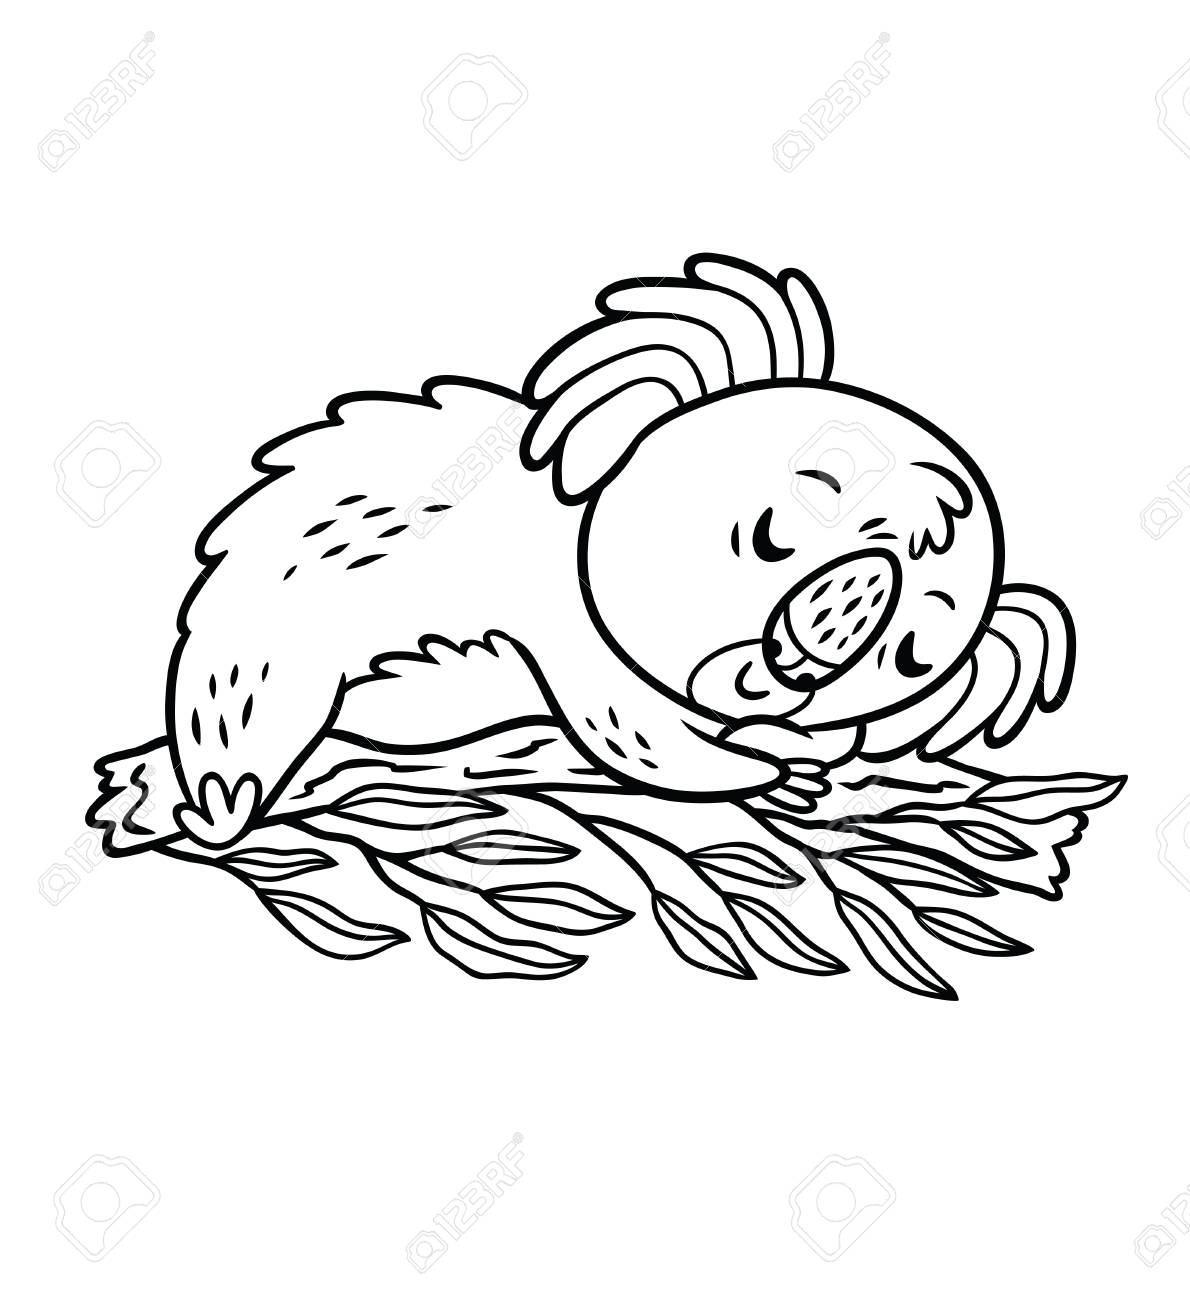 Koala Relaxing In A Tree Black And White Vector Illustration